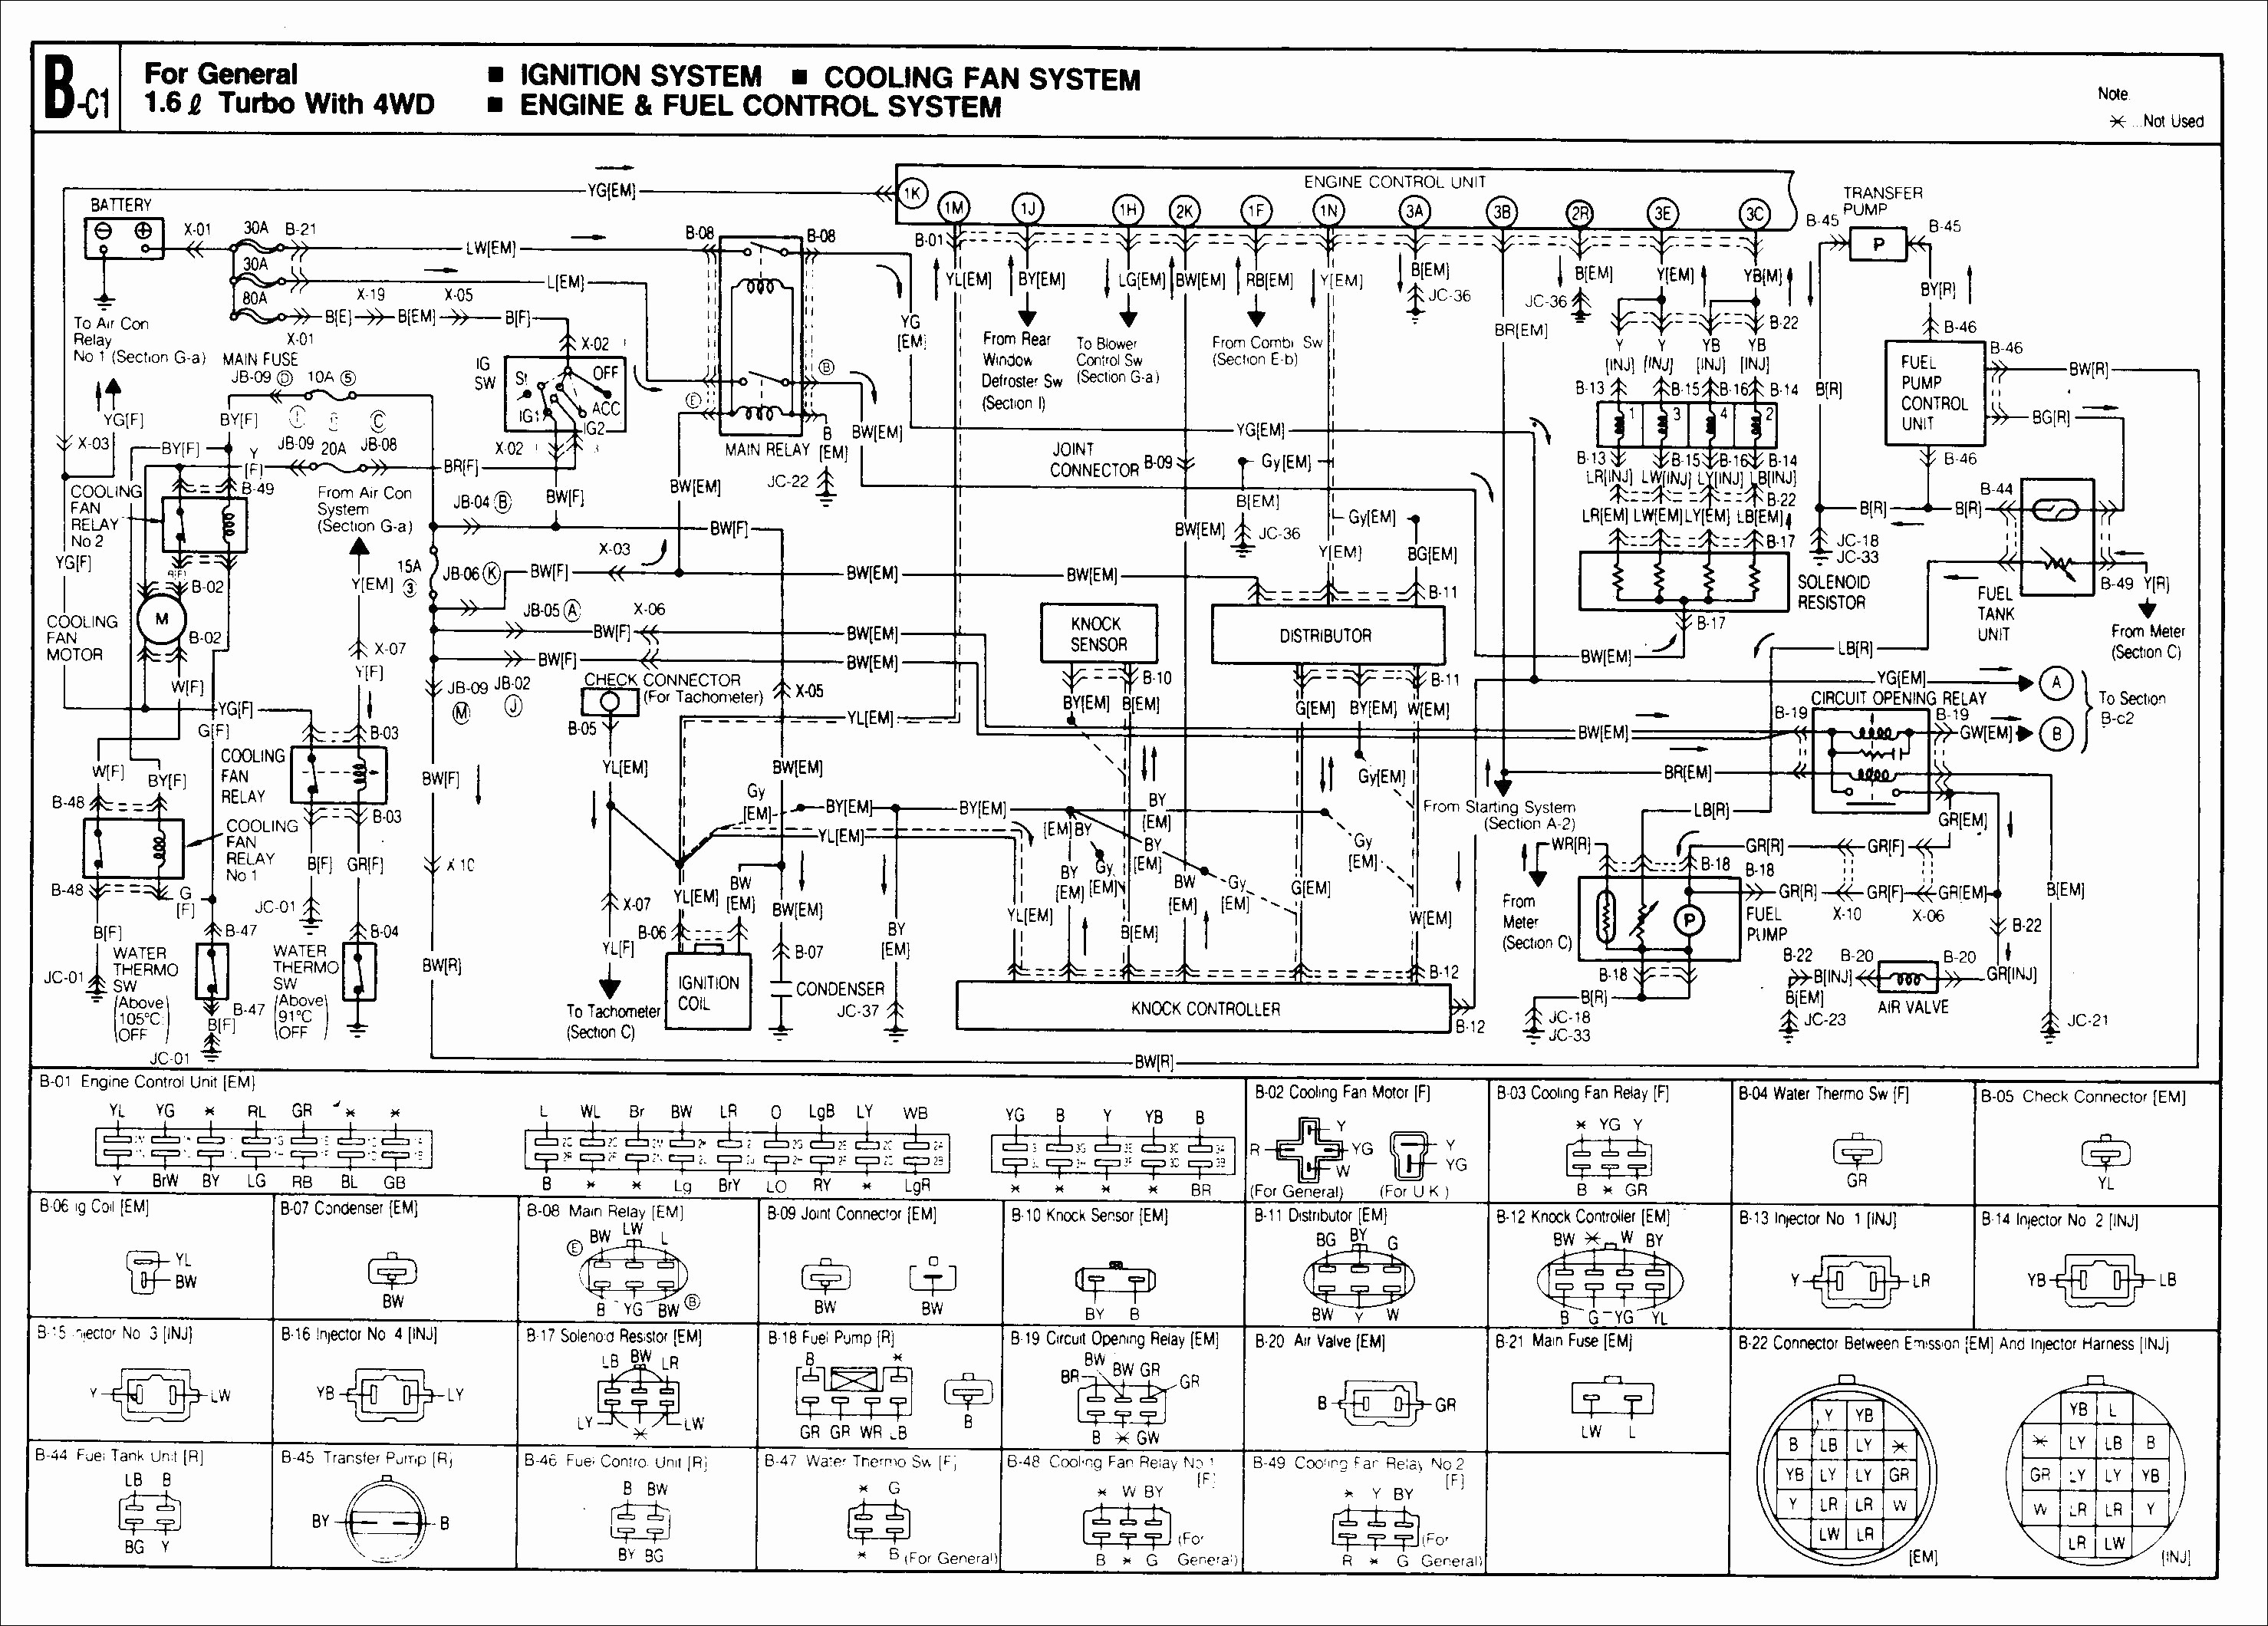 Bluebird Bus Wiring Diagrams 1990 - 2005 Ford F 150 4 6l Engine Wiring  Diagram - air-bag.yenpancane.jeanjaures37.frWiring Diagram Resource